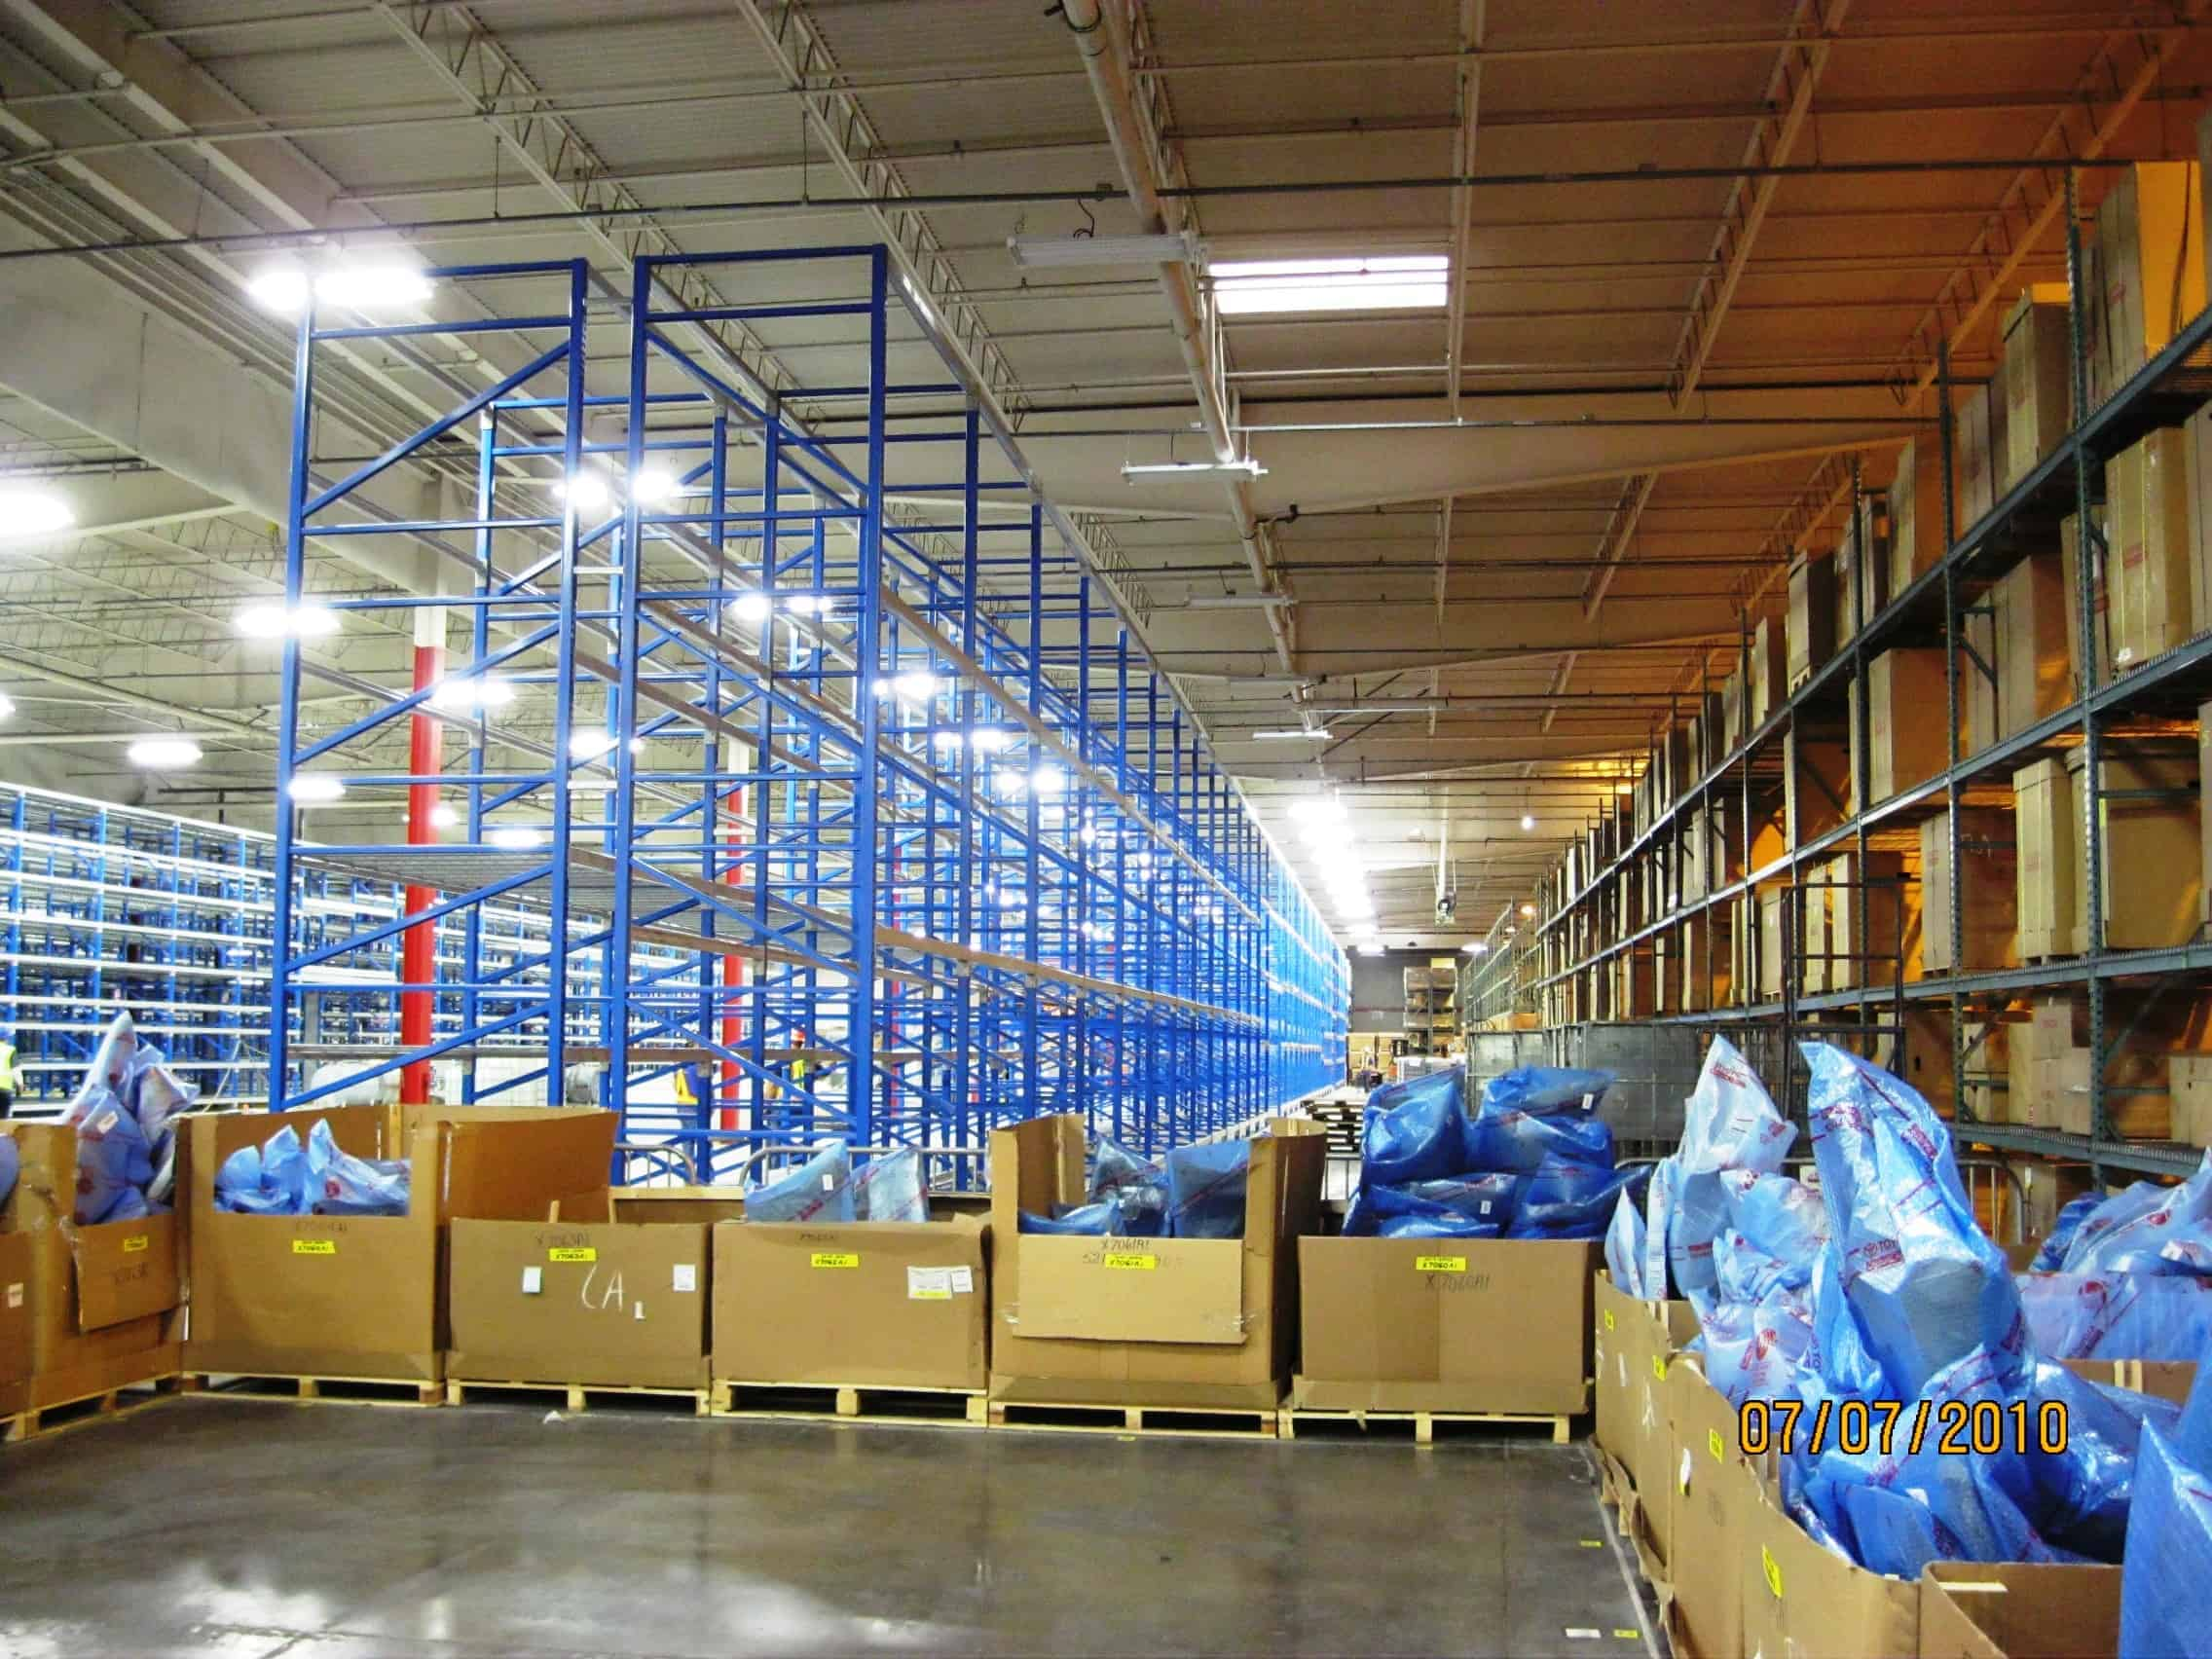 LAPDC  - Los Angeles Parts Distribution Center